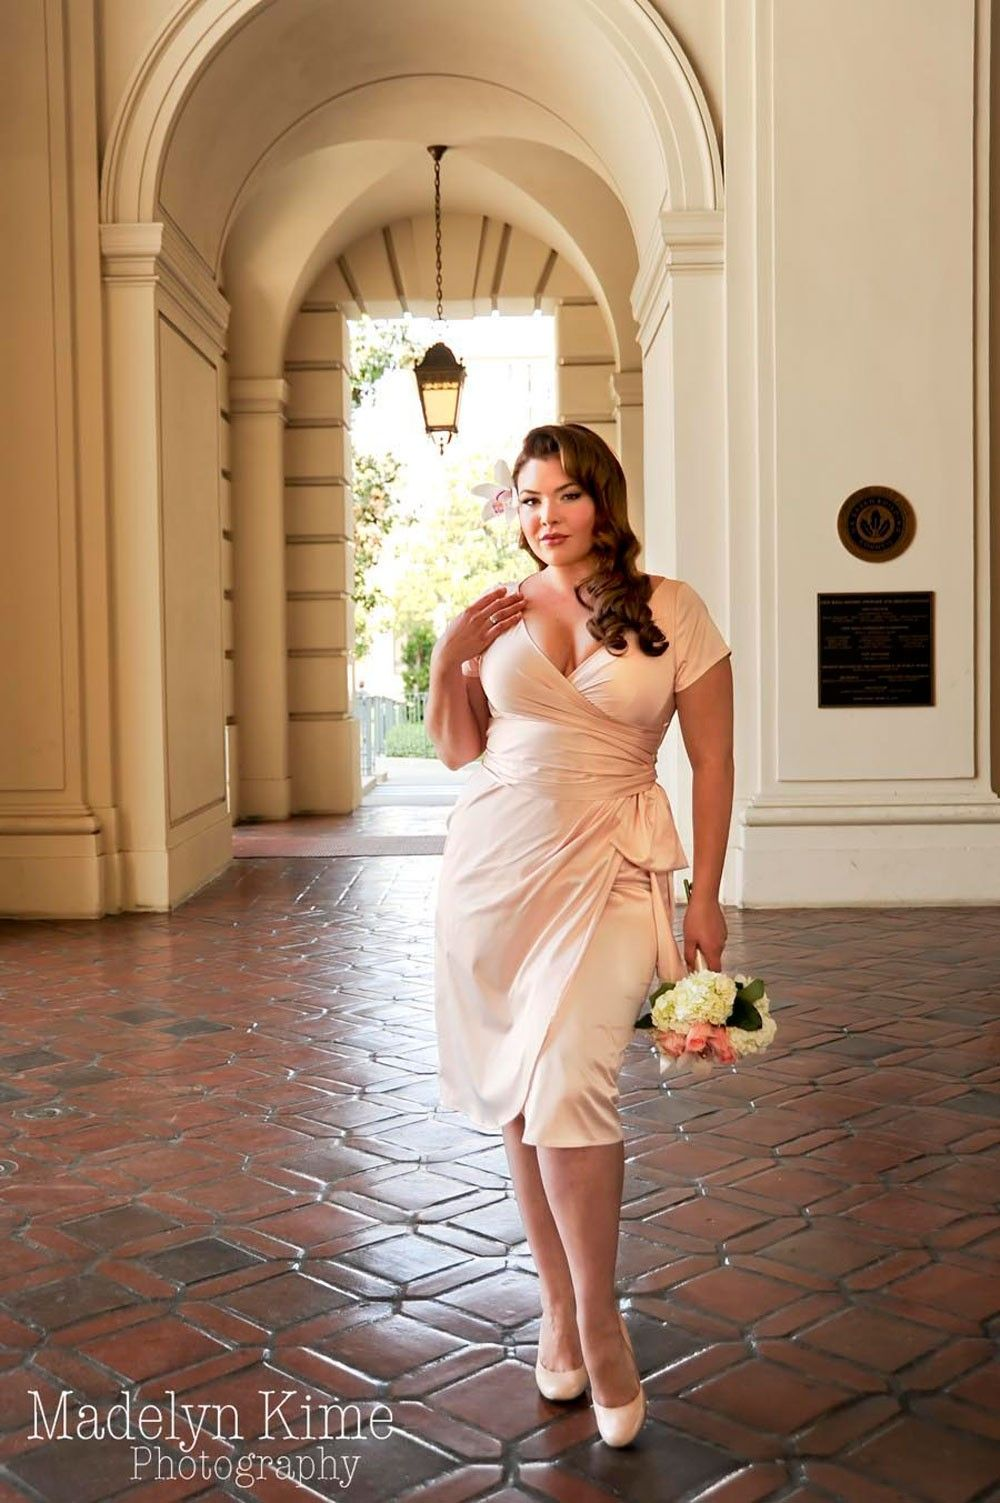 Plus size pin up style wedding dress  For engagement party or rehearsal dinner Ava Dress in Blush